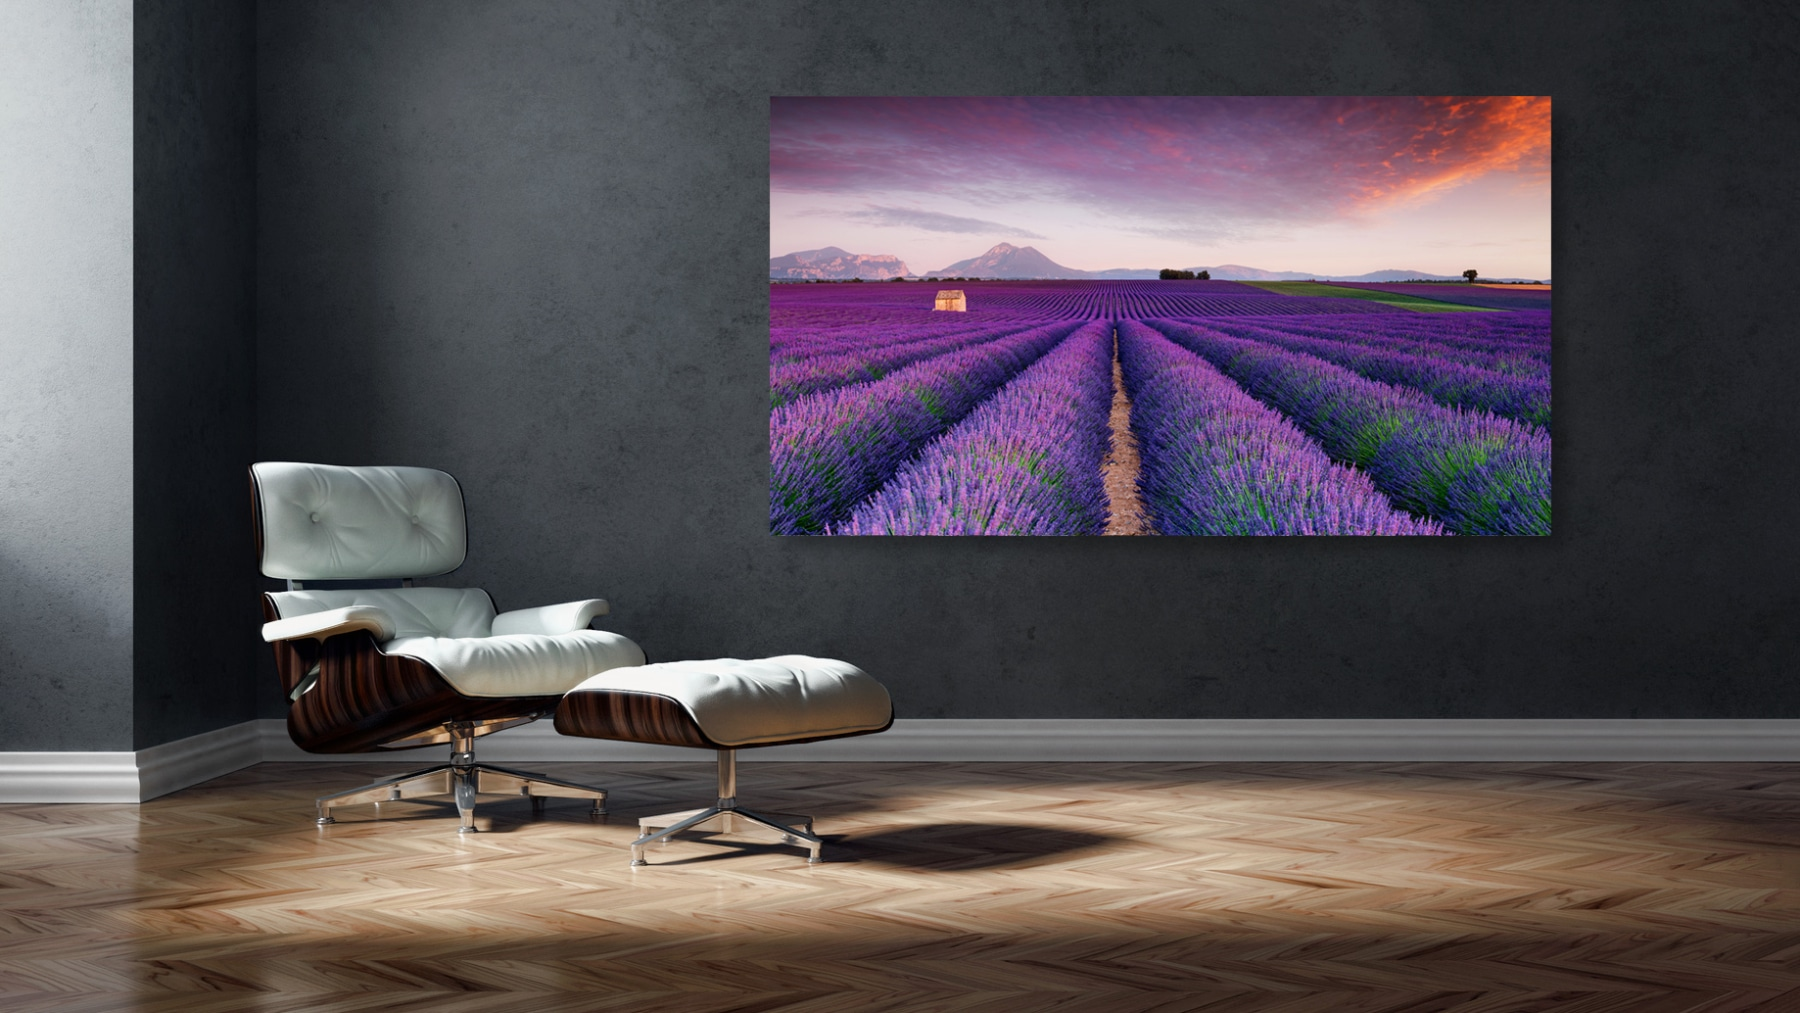 France - Provence - Valensole - Lavender - when the bees call it a day!